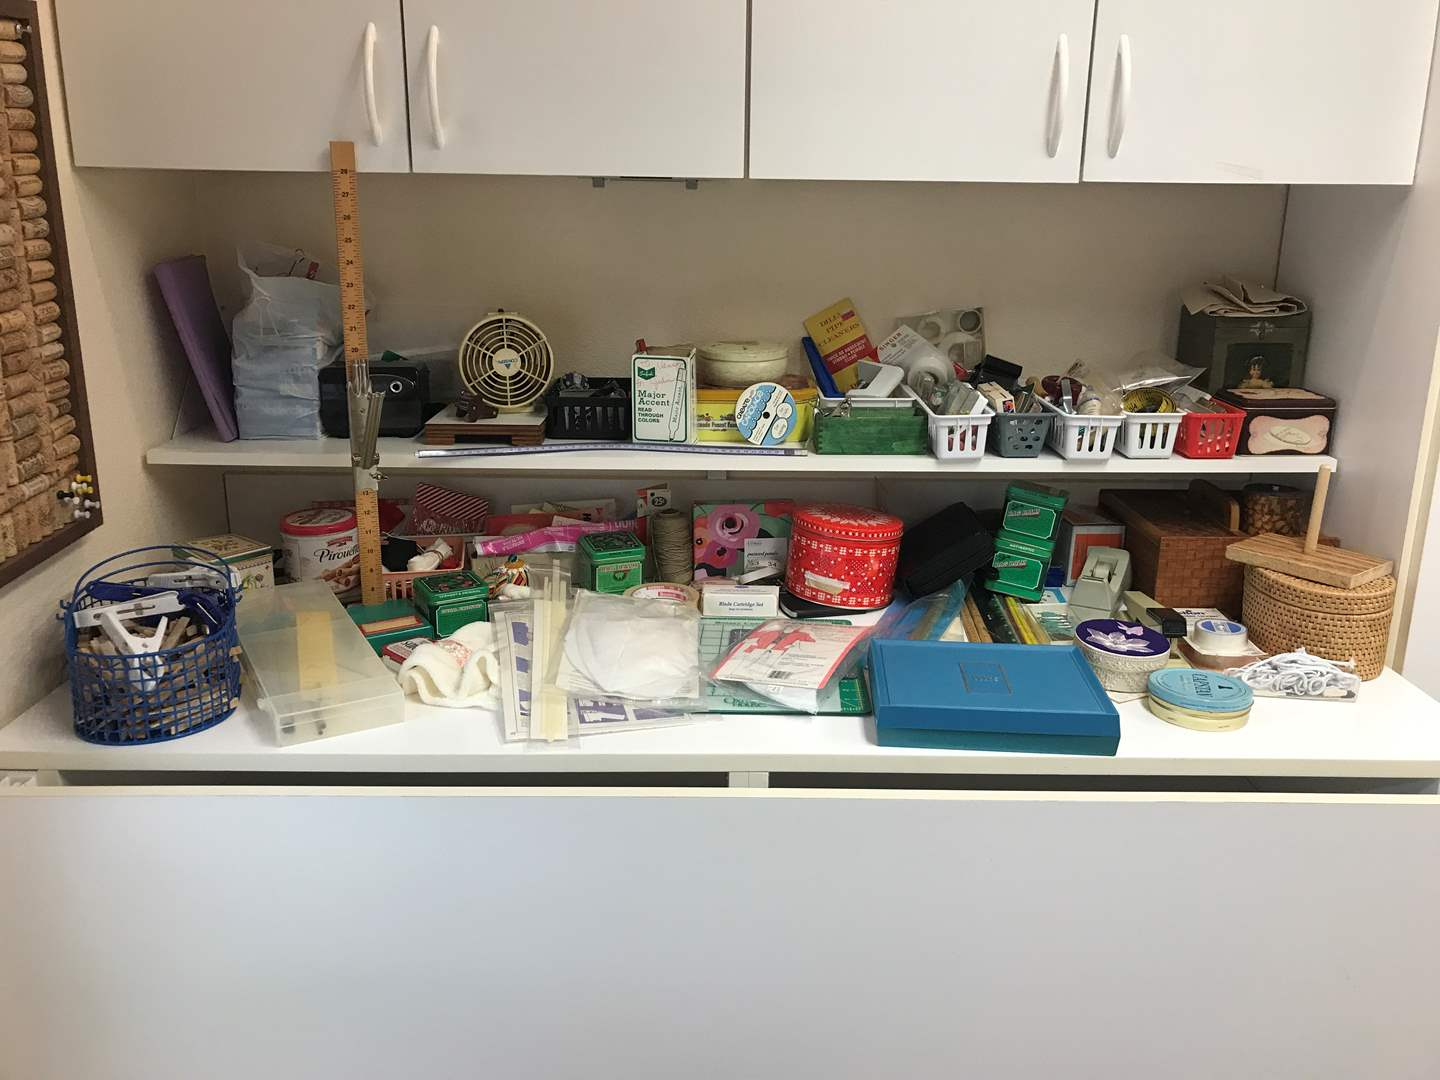 Lot # 145 - Lot of Sewing Implements: Scissors, Pins, Buttons, Threads, Binder Clips, Tapes & More (main image)